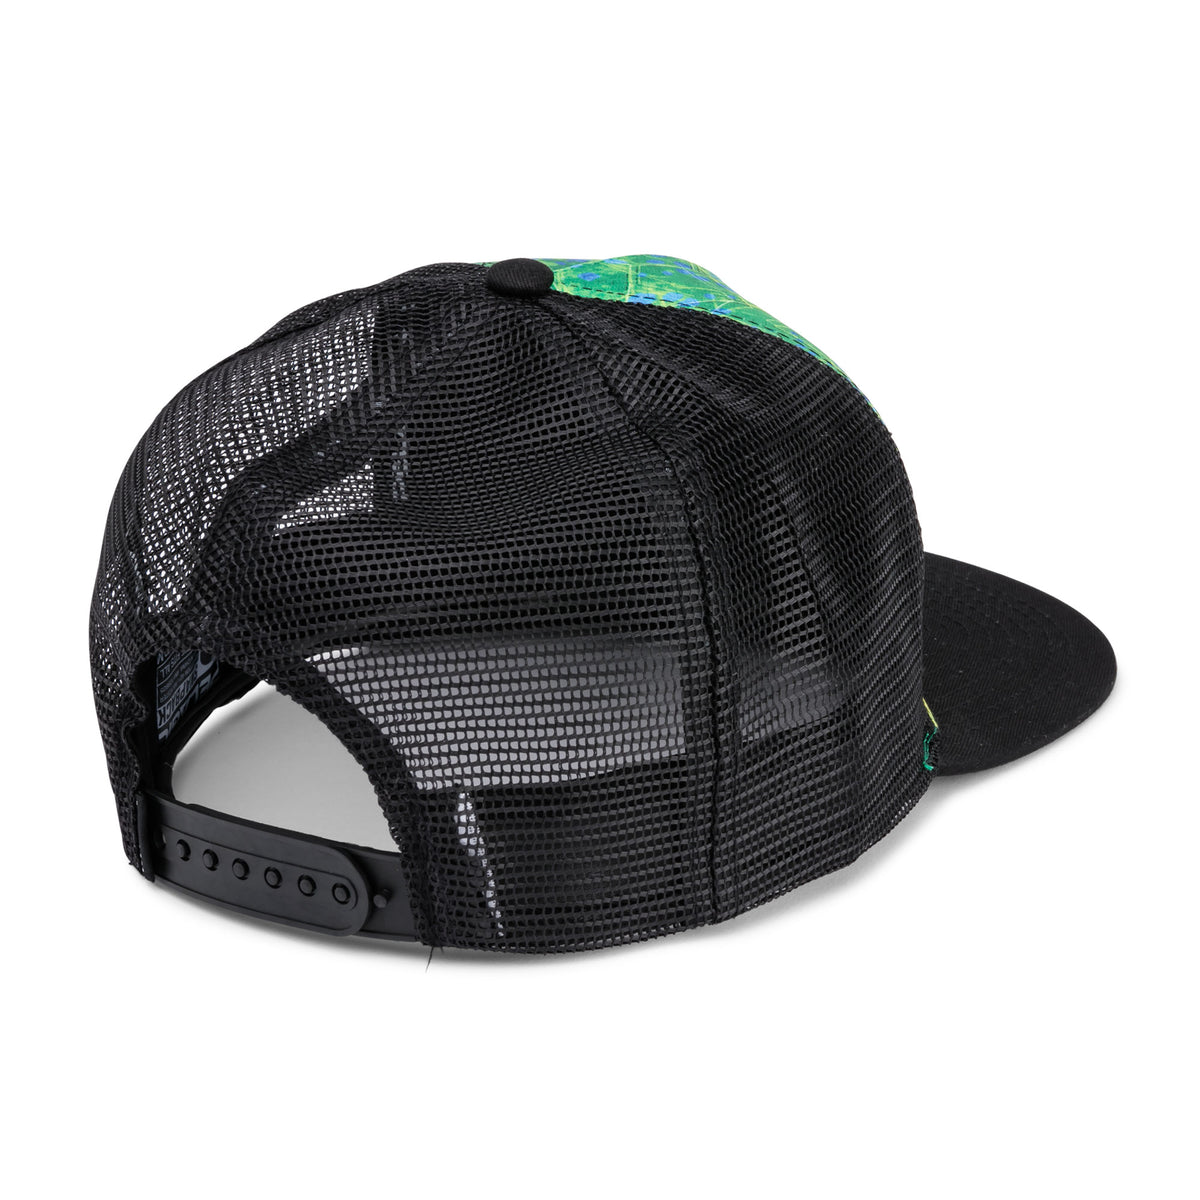 Alpha Snapback Hat Big Image - 2